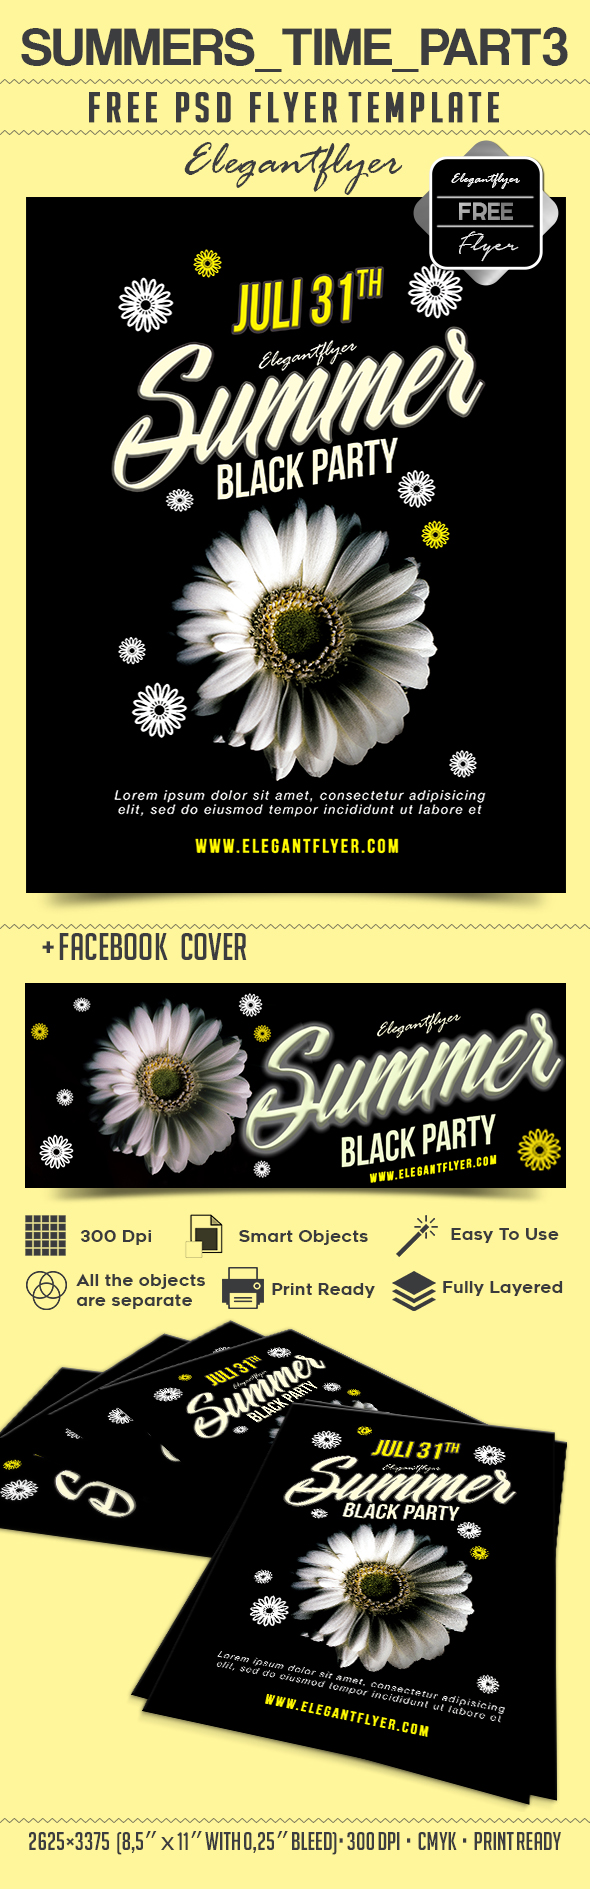 Summers Time _part3 – free psd flyer